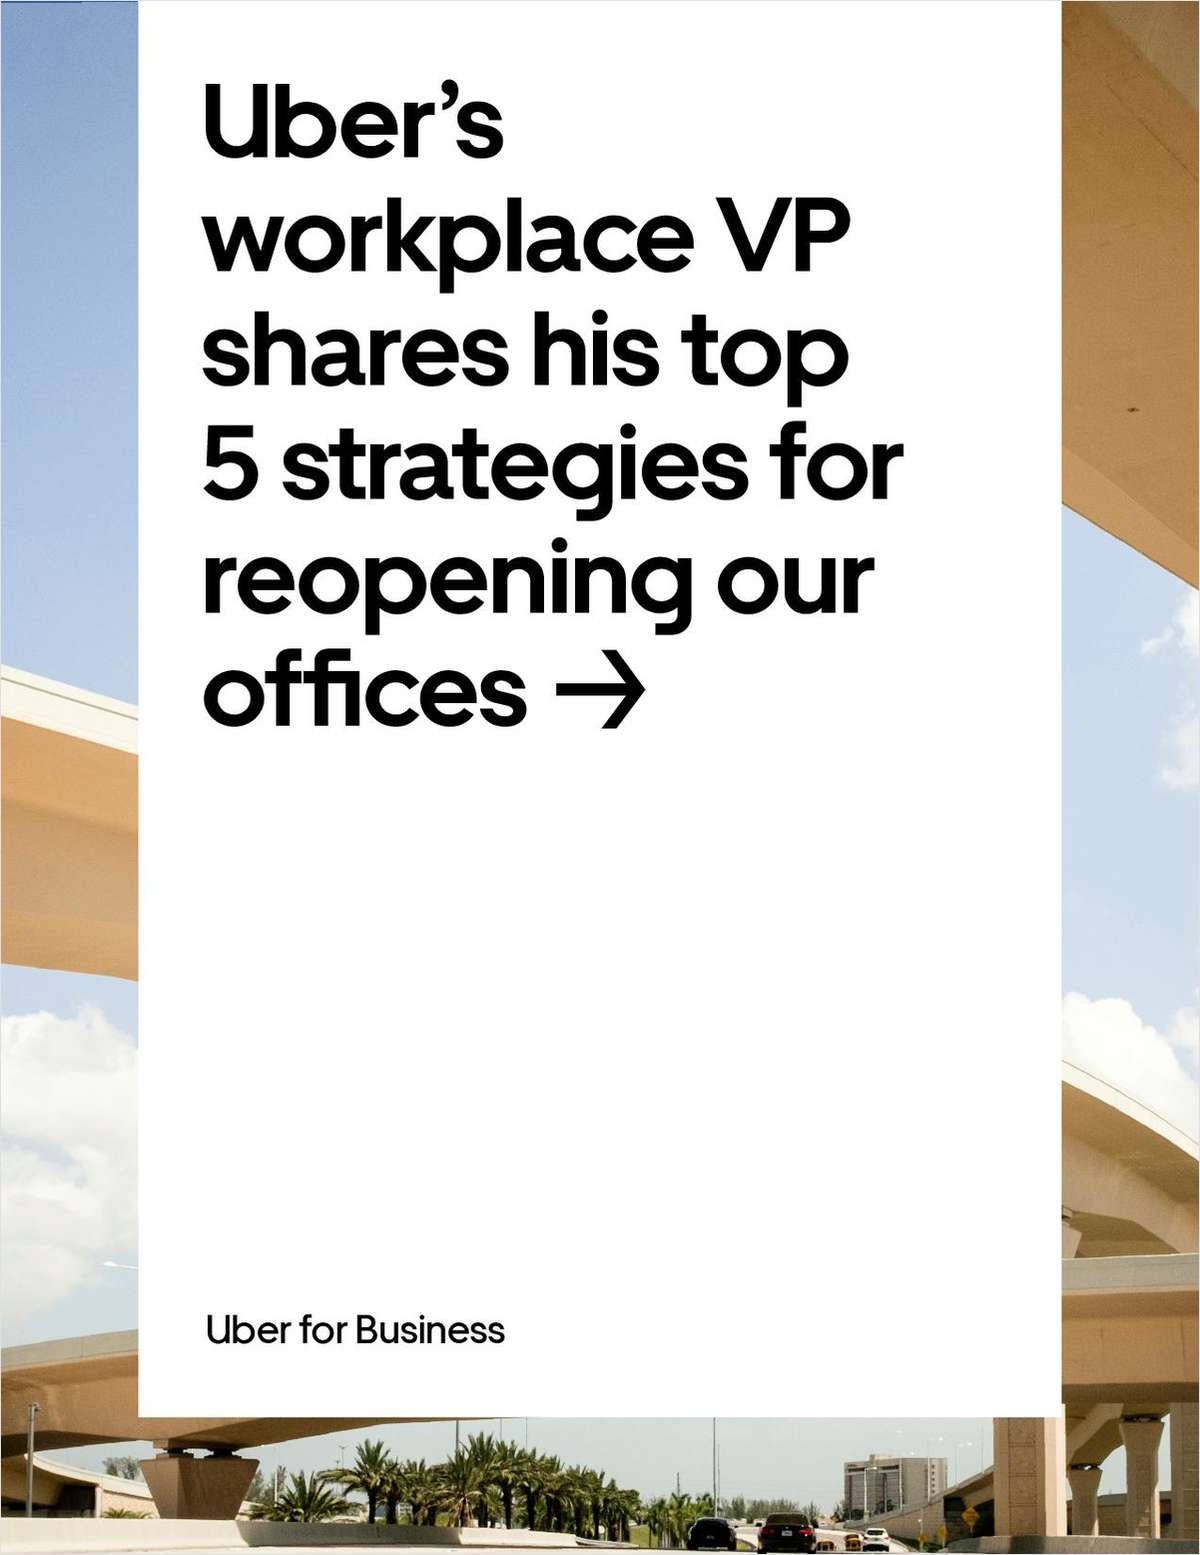 Uber's workplace VP shares his top 5 strategies for reopening our offices